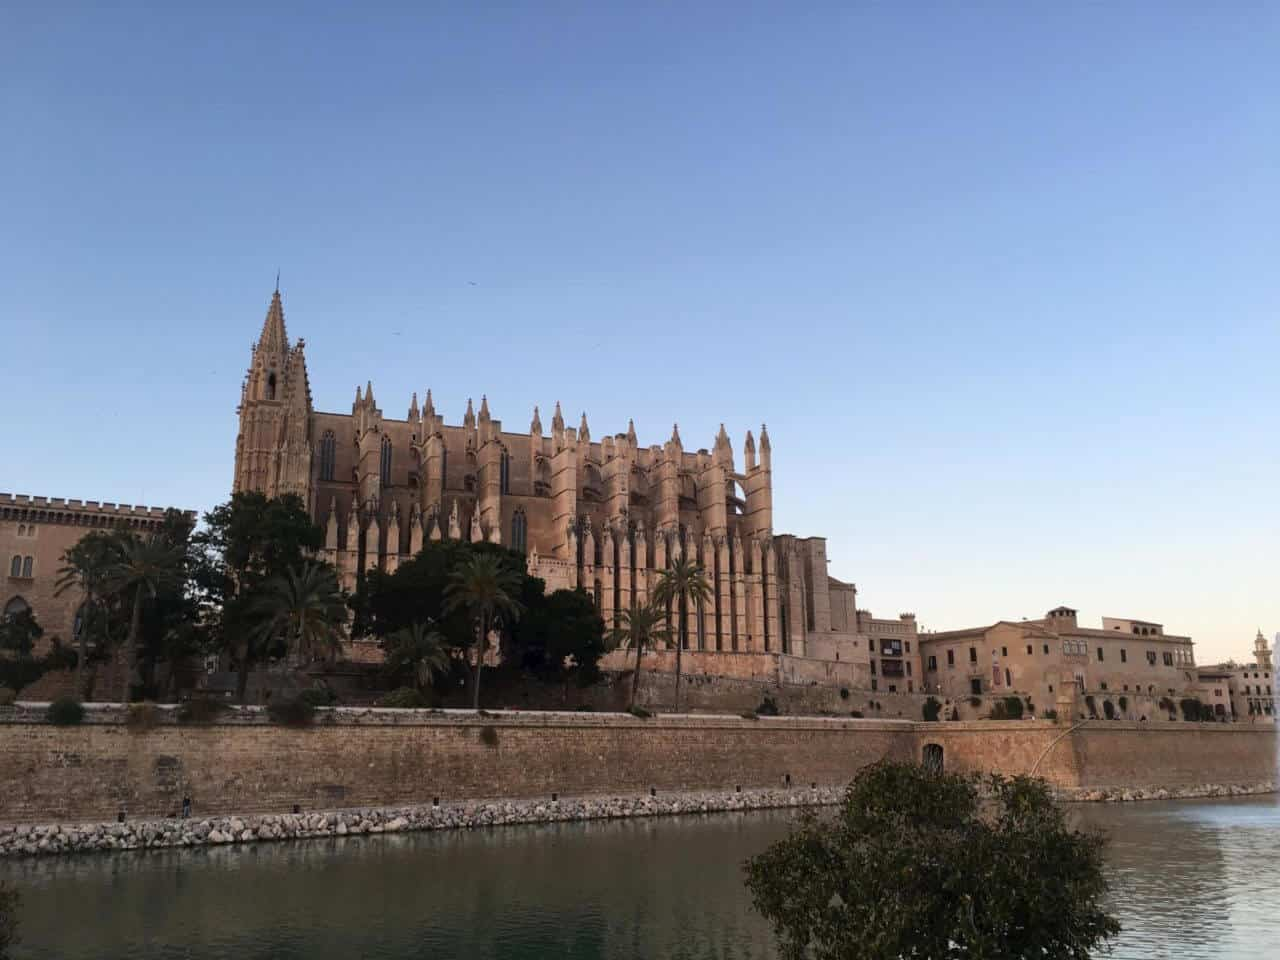 A castle surrounded by a body of water with Palma Cathedral in the background